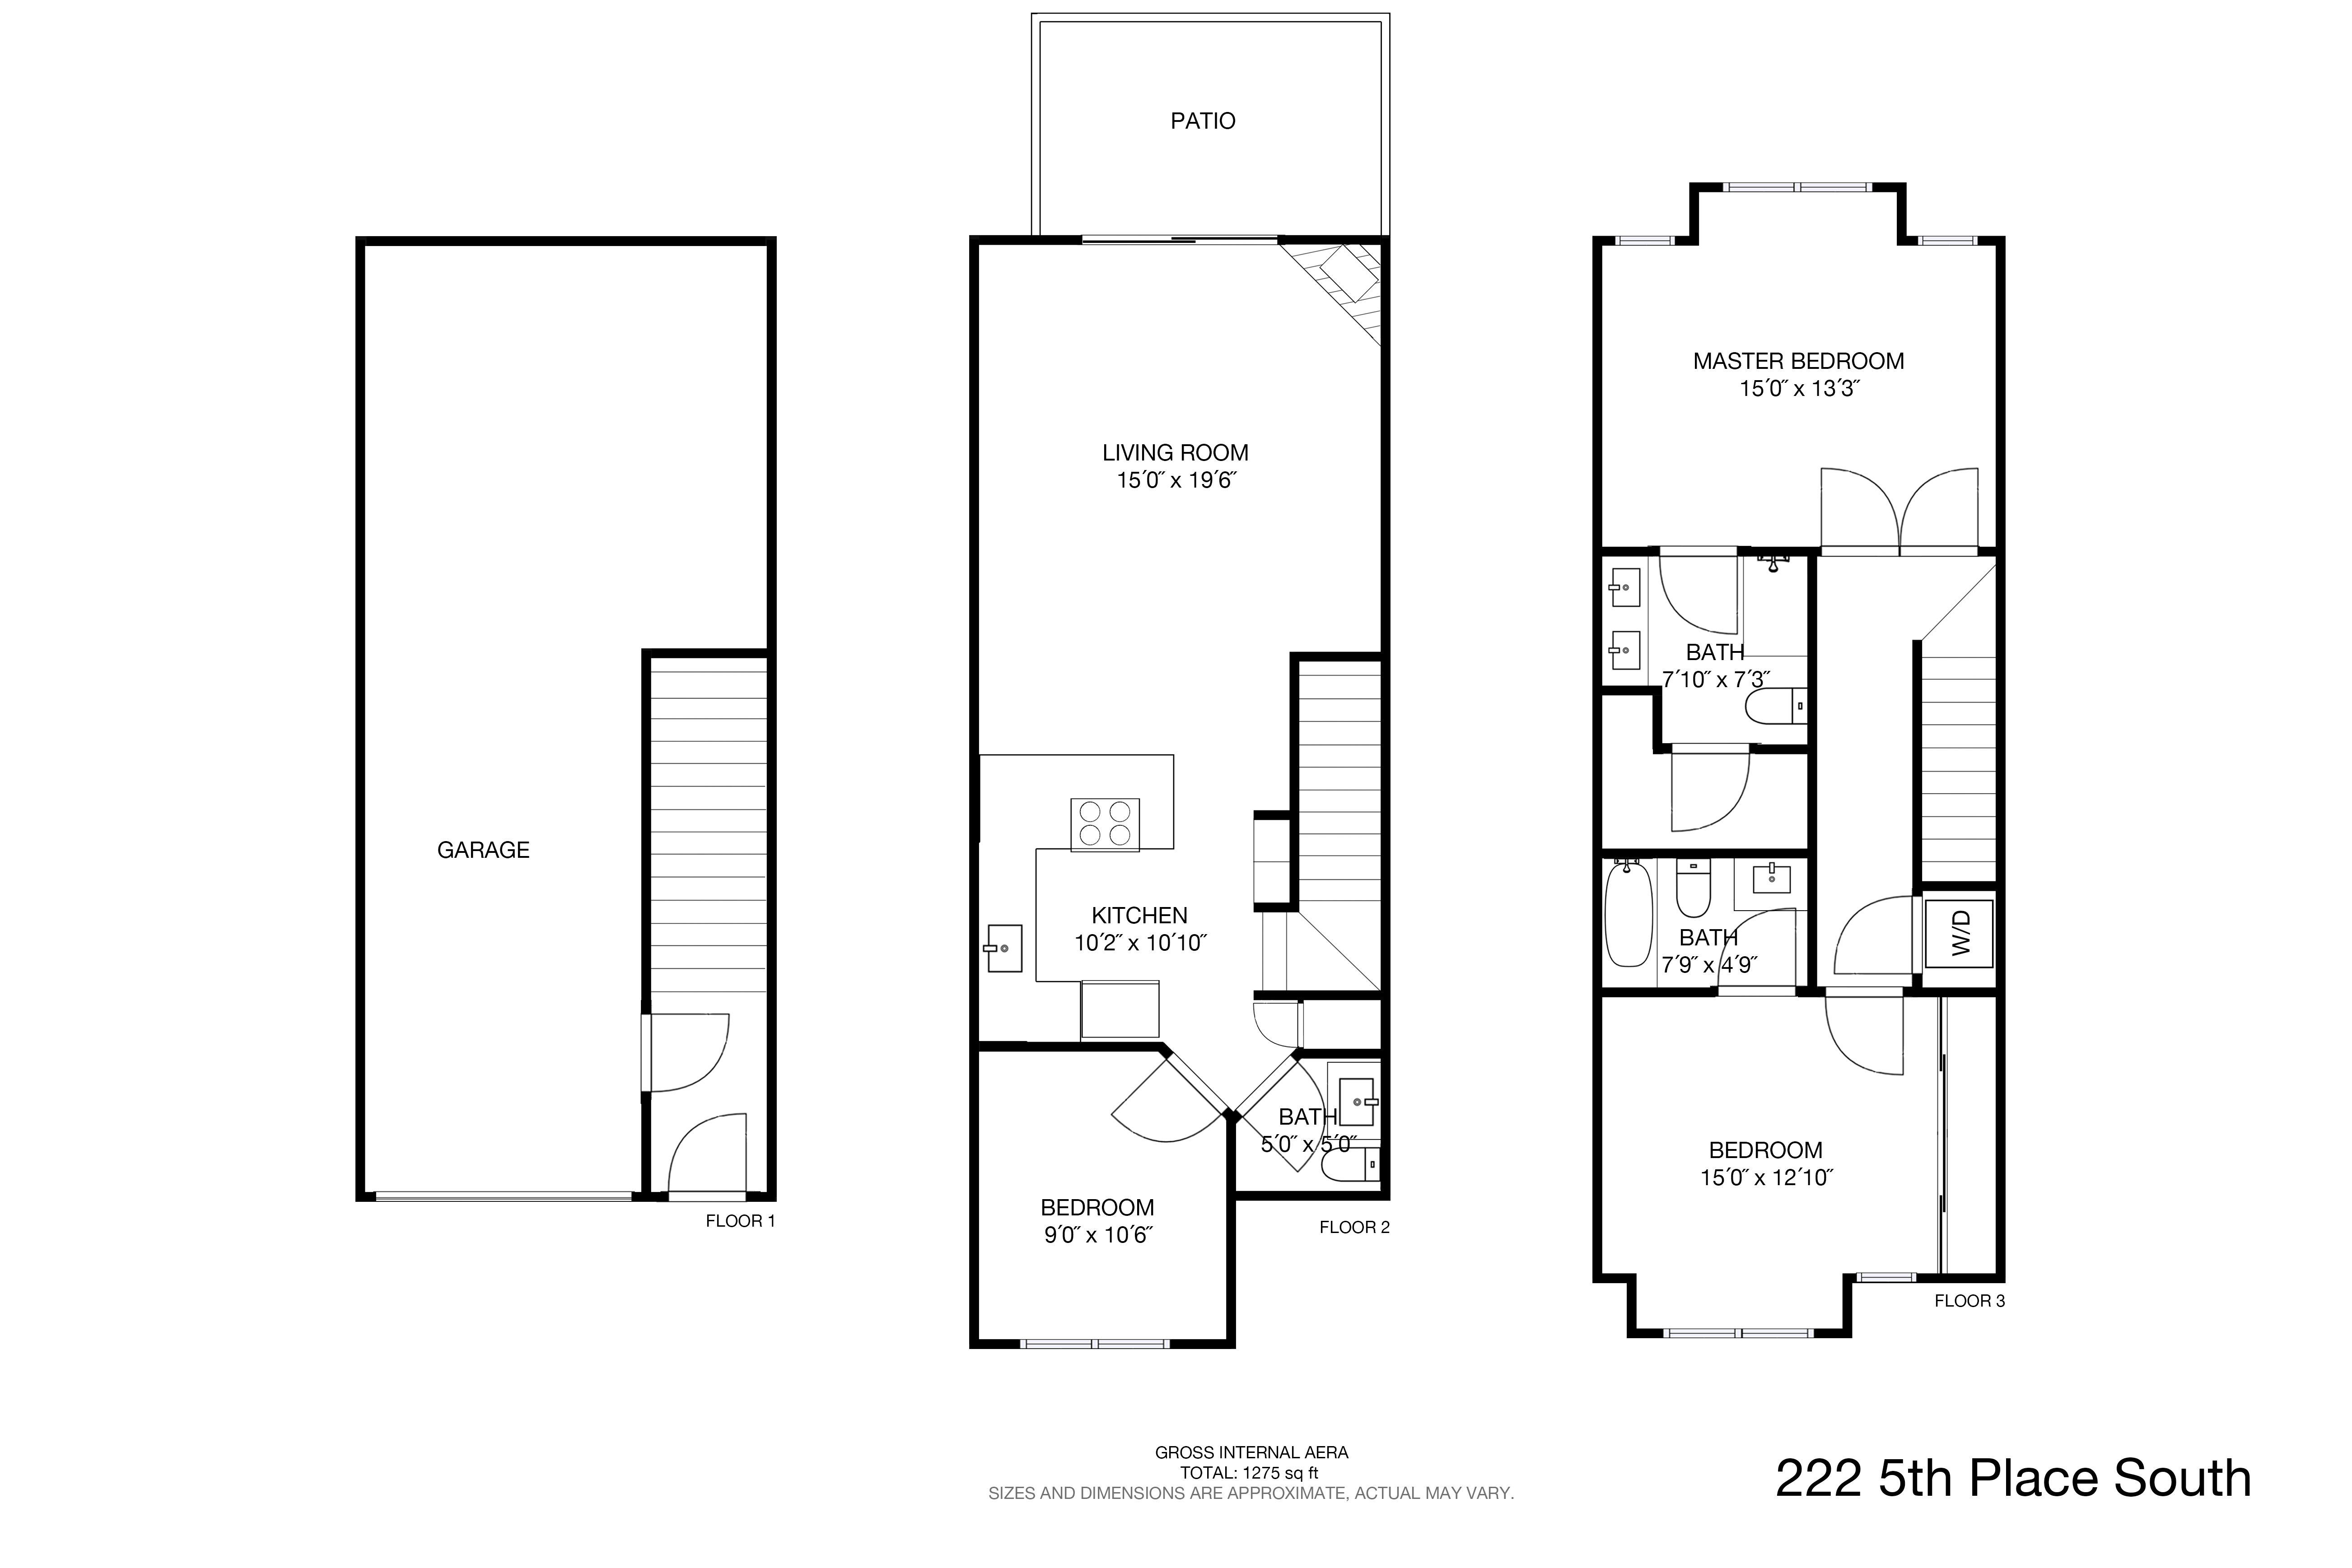 222 5th Place South Floor Plan 2